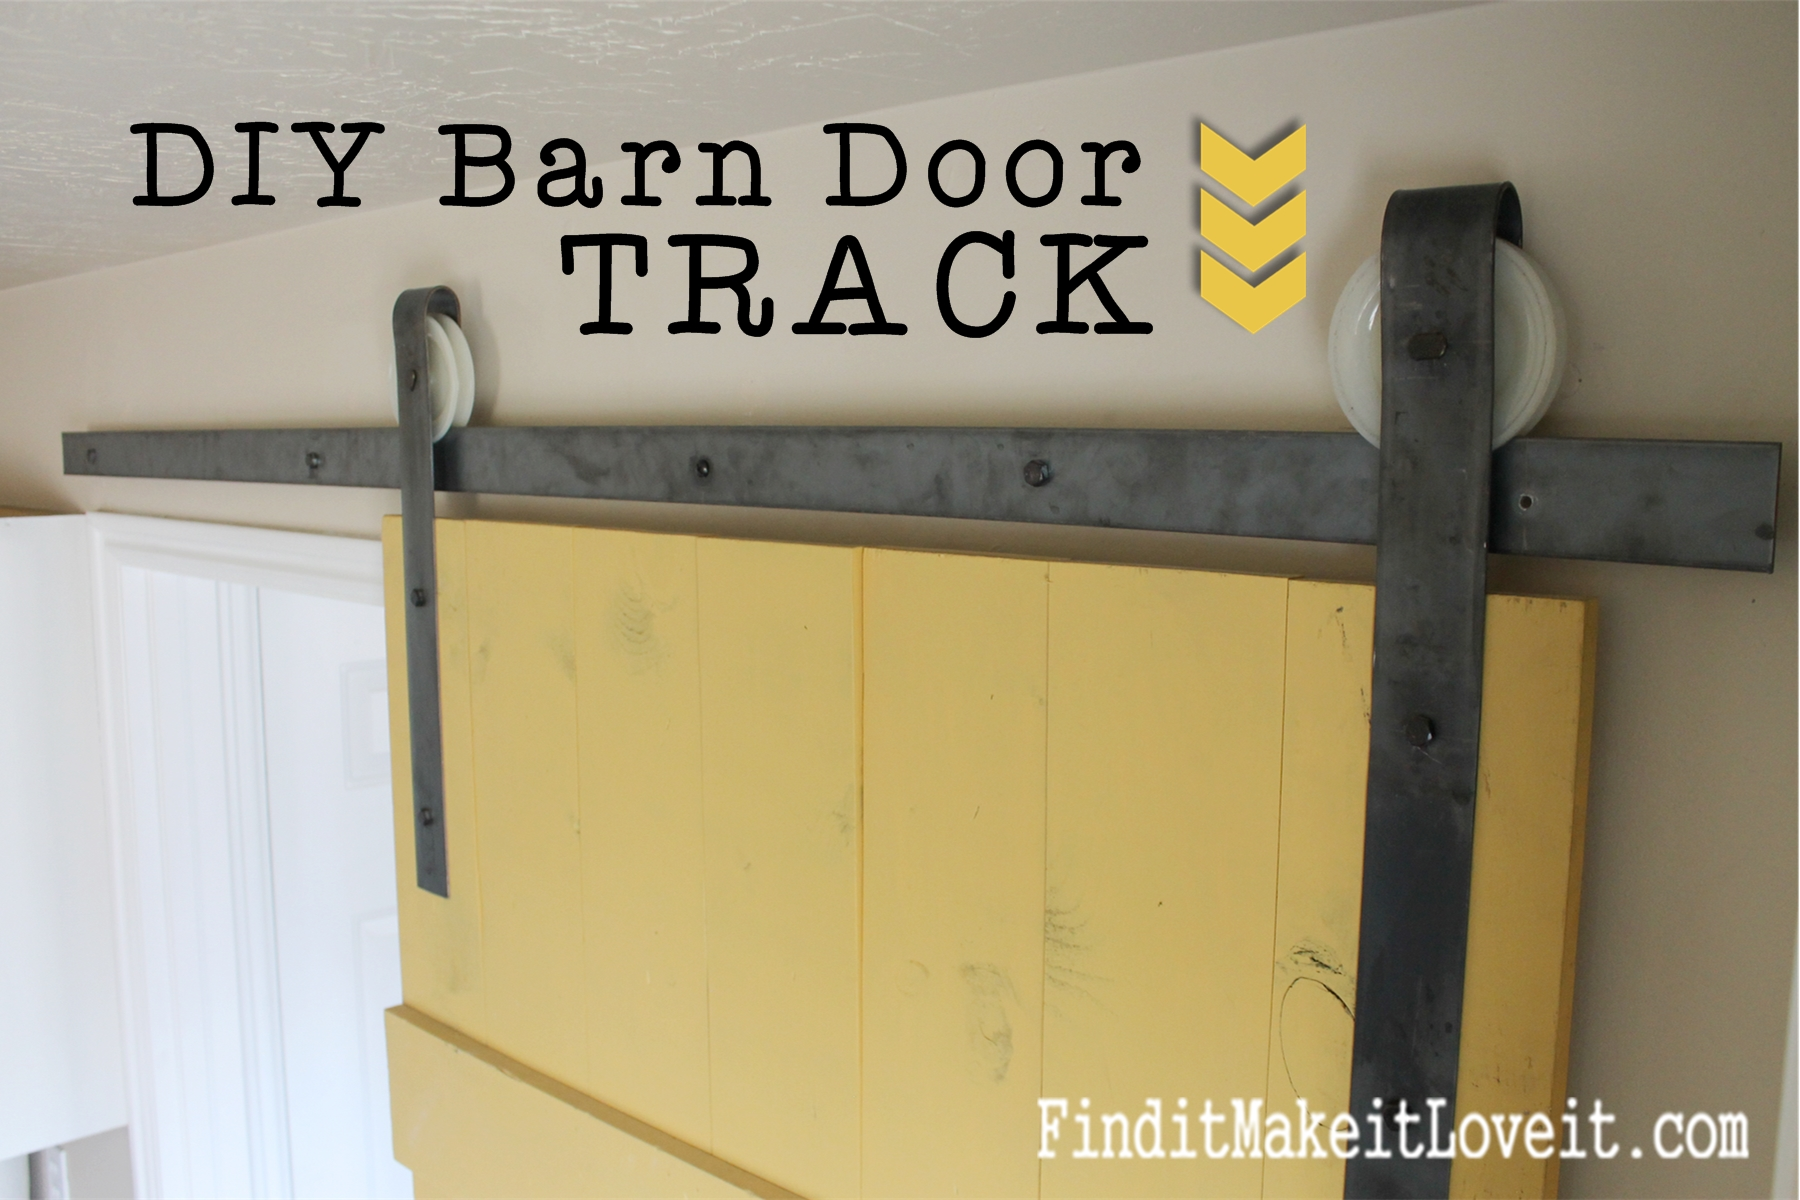 Diy Bypass Barn Door Hardware diy barn door track - find it, make it, love it